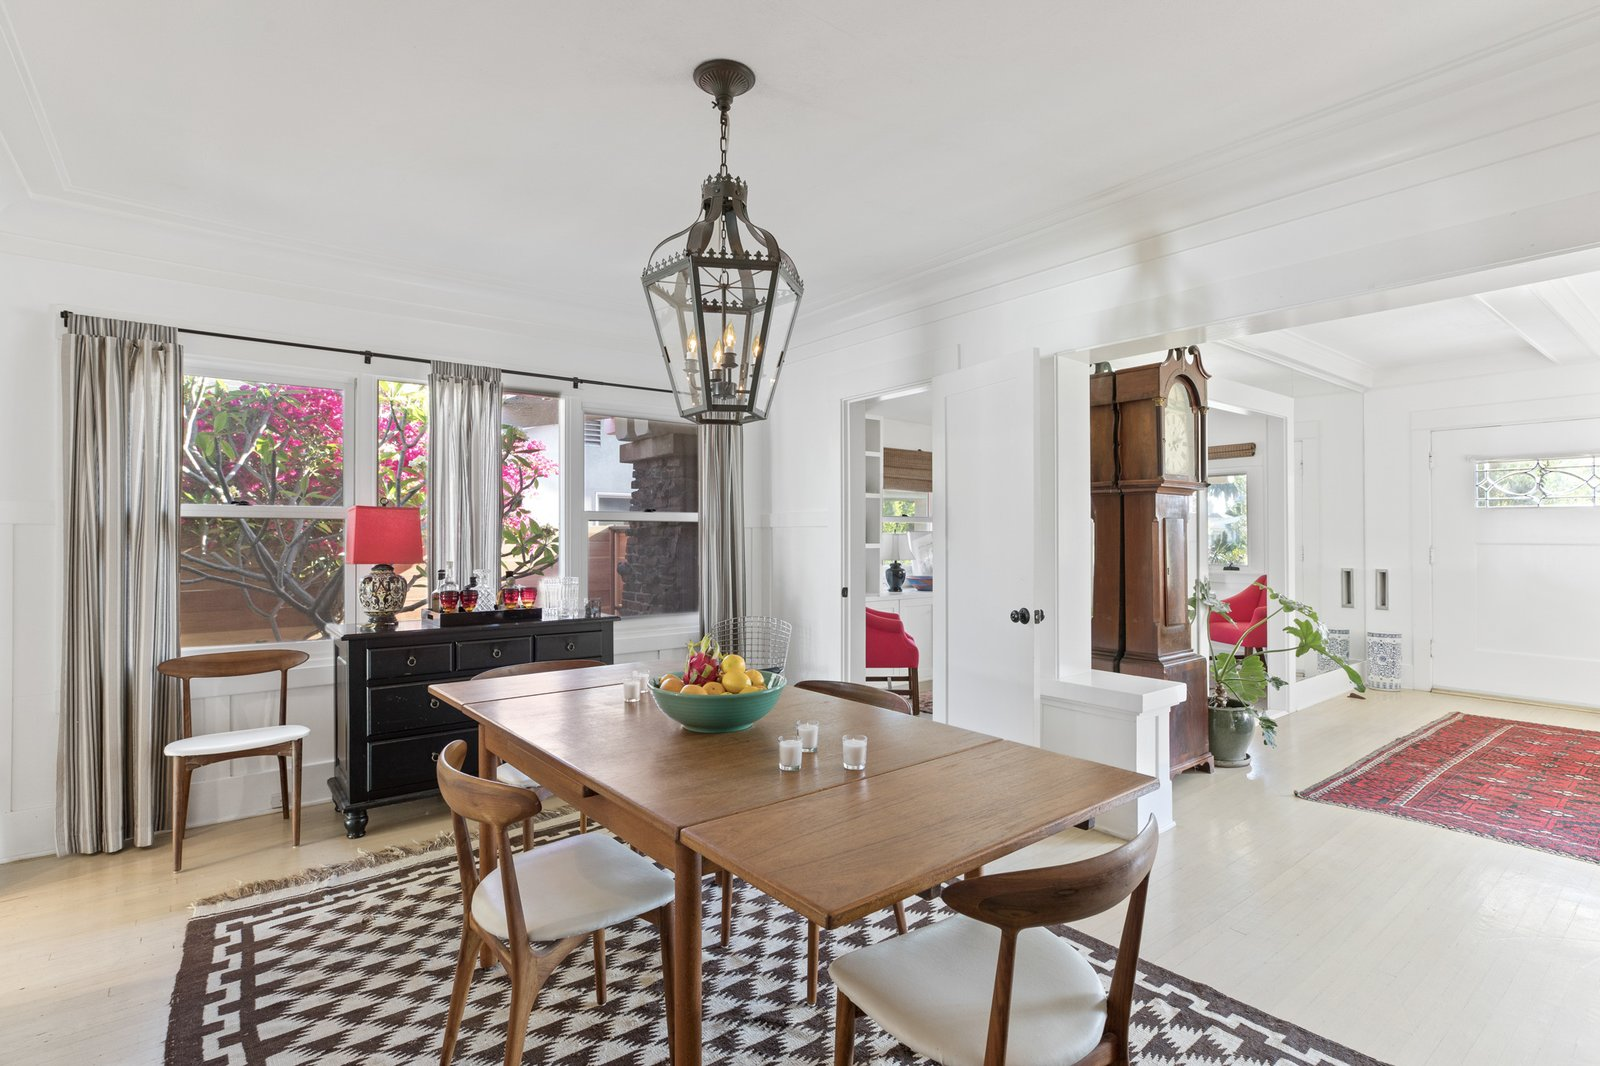 An open dining area sits between the living room and kitchen. Windows along one wall overlook bougainvillea trees along the side yard.  Photo 5 of 16 in An Artfully Reimagined California Craftsman Asks $1.2M